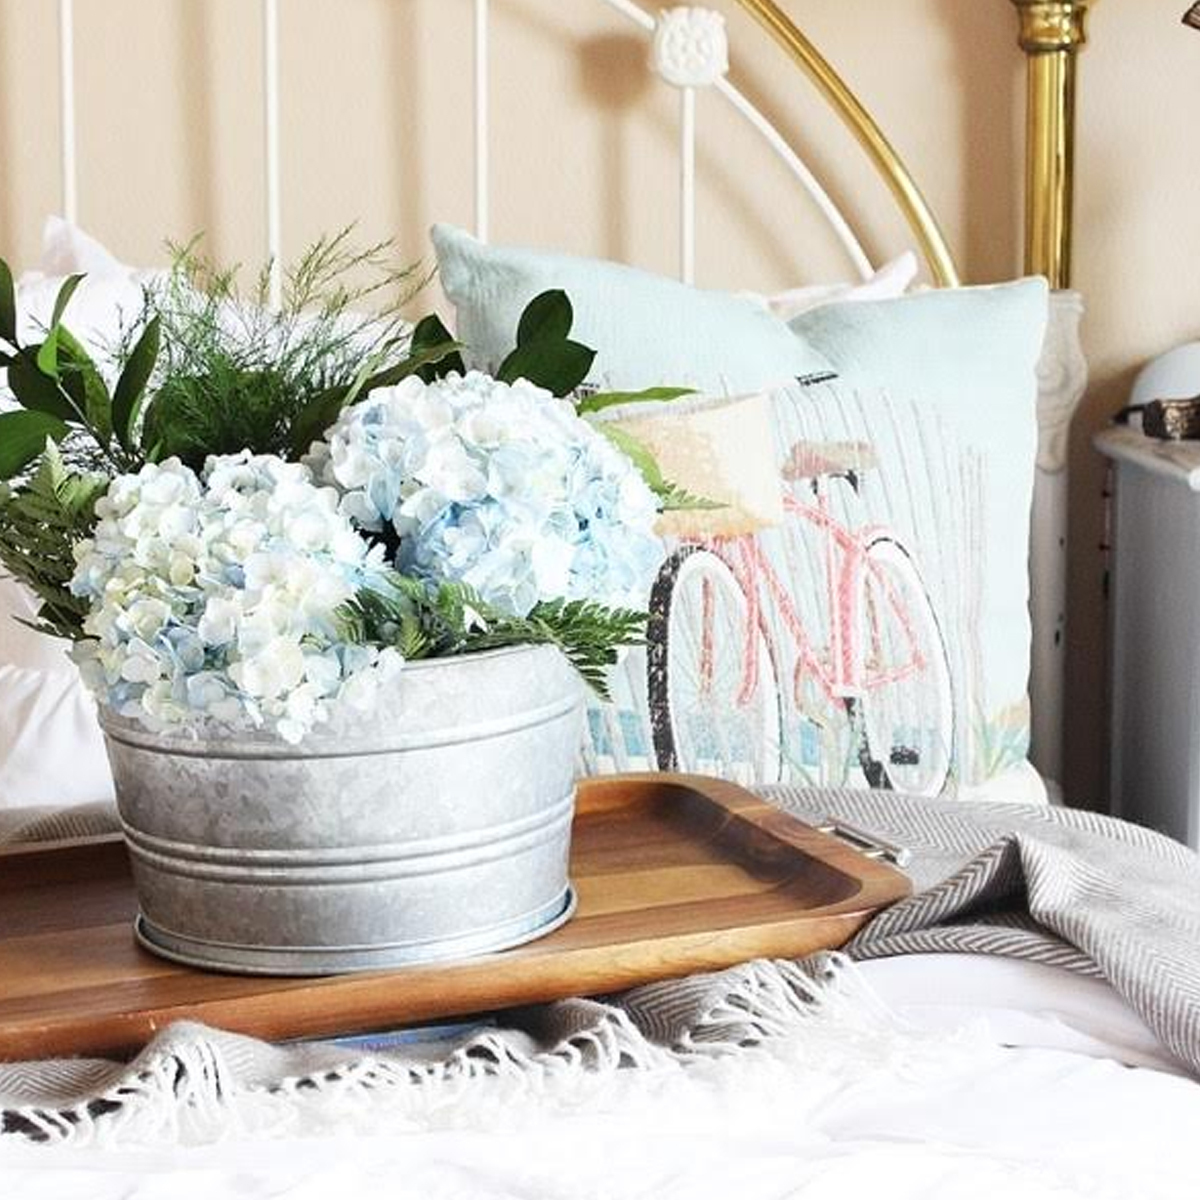 Wood tray with galvanized bucket and flowers photo